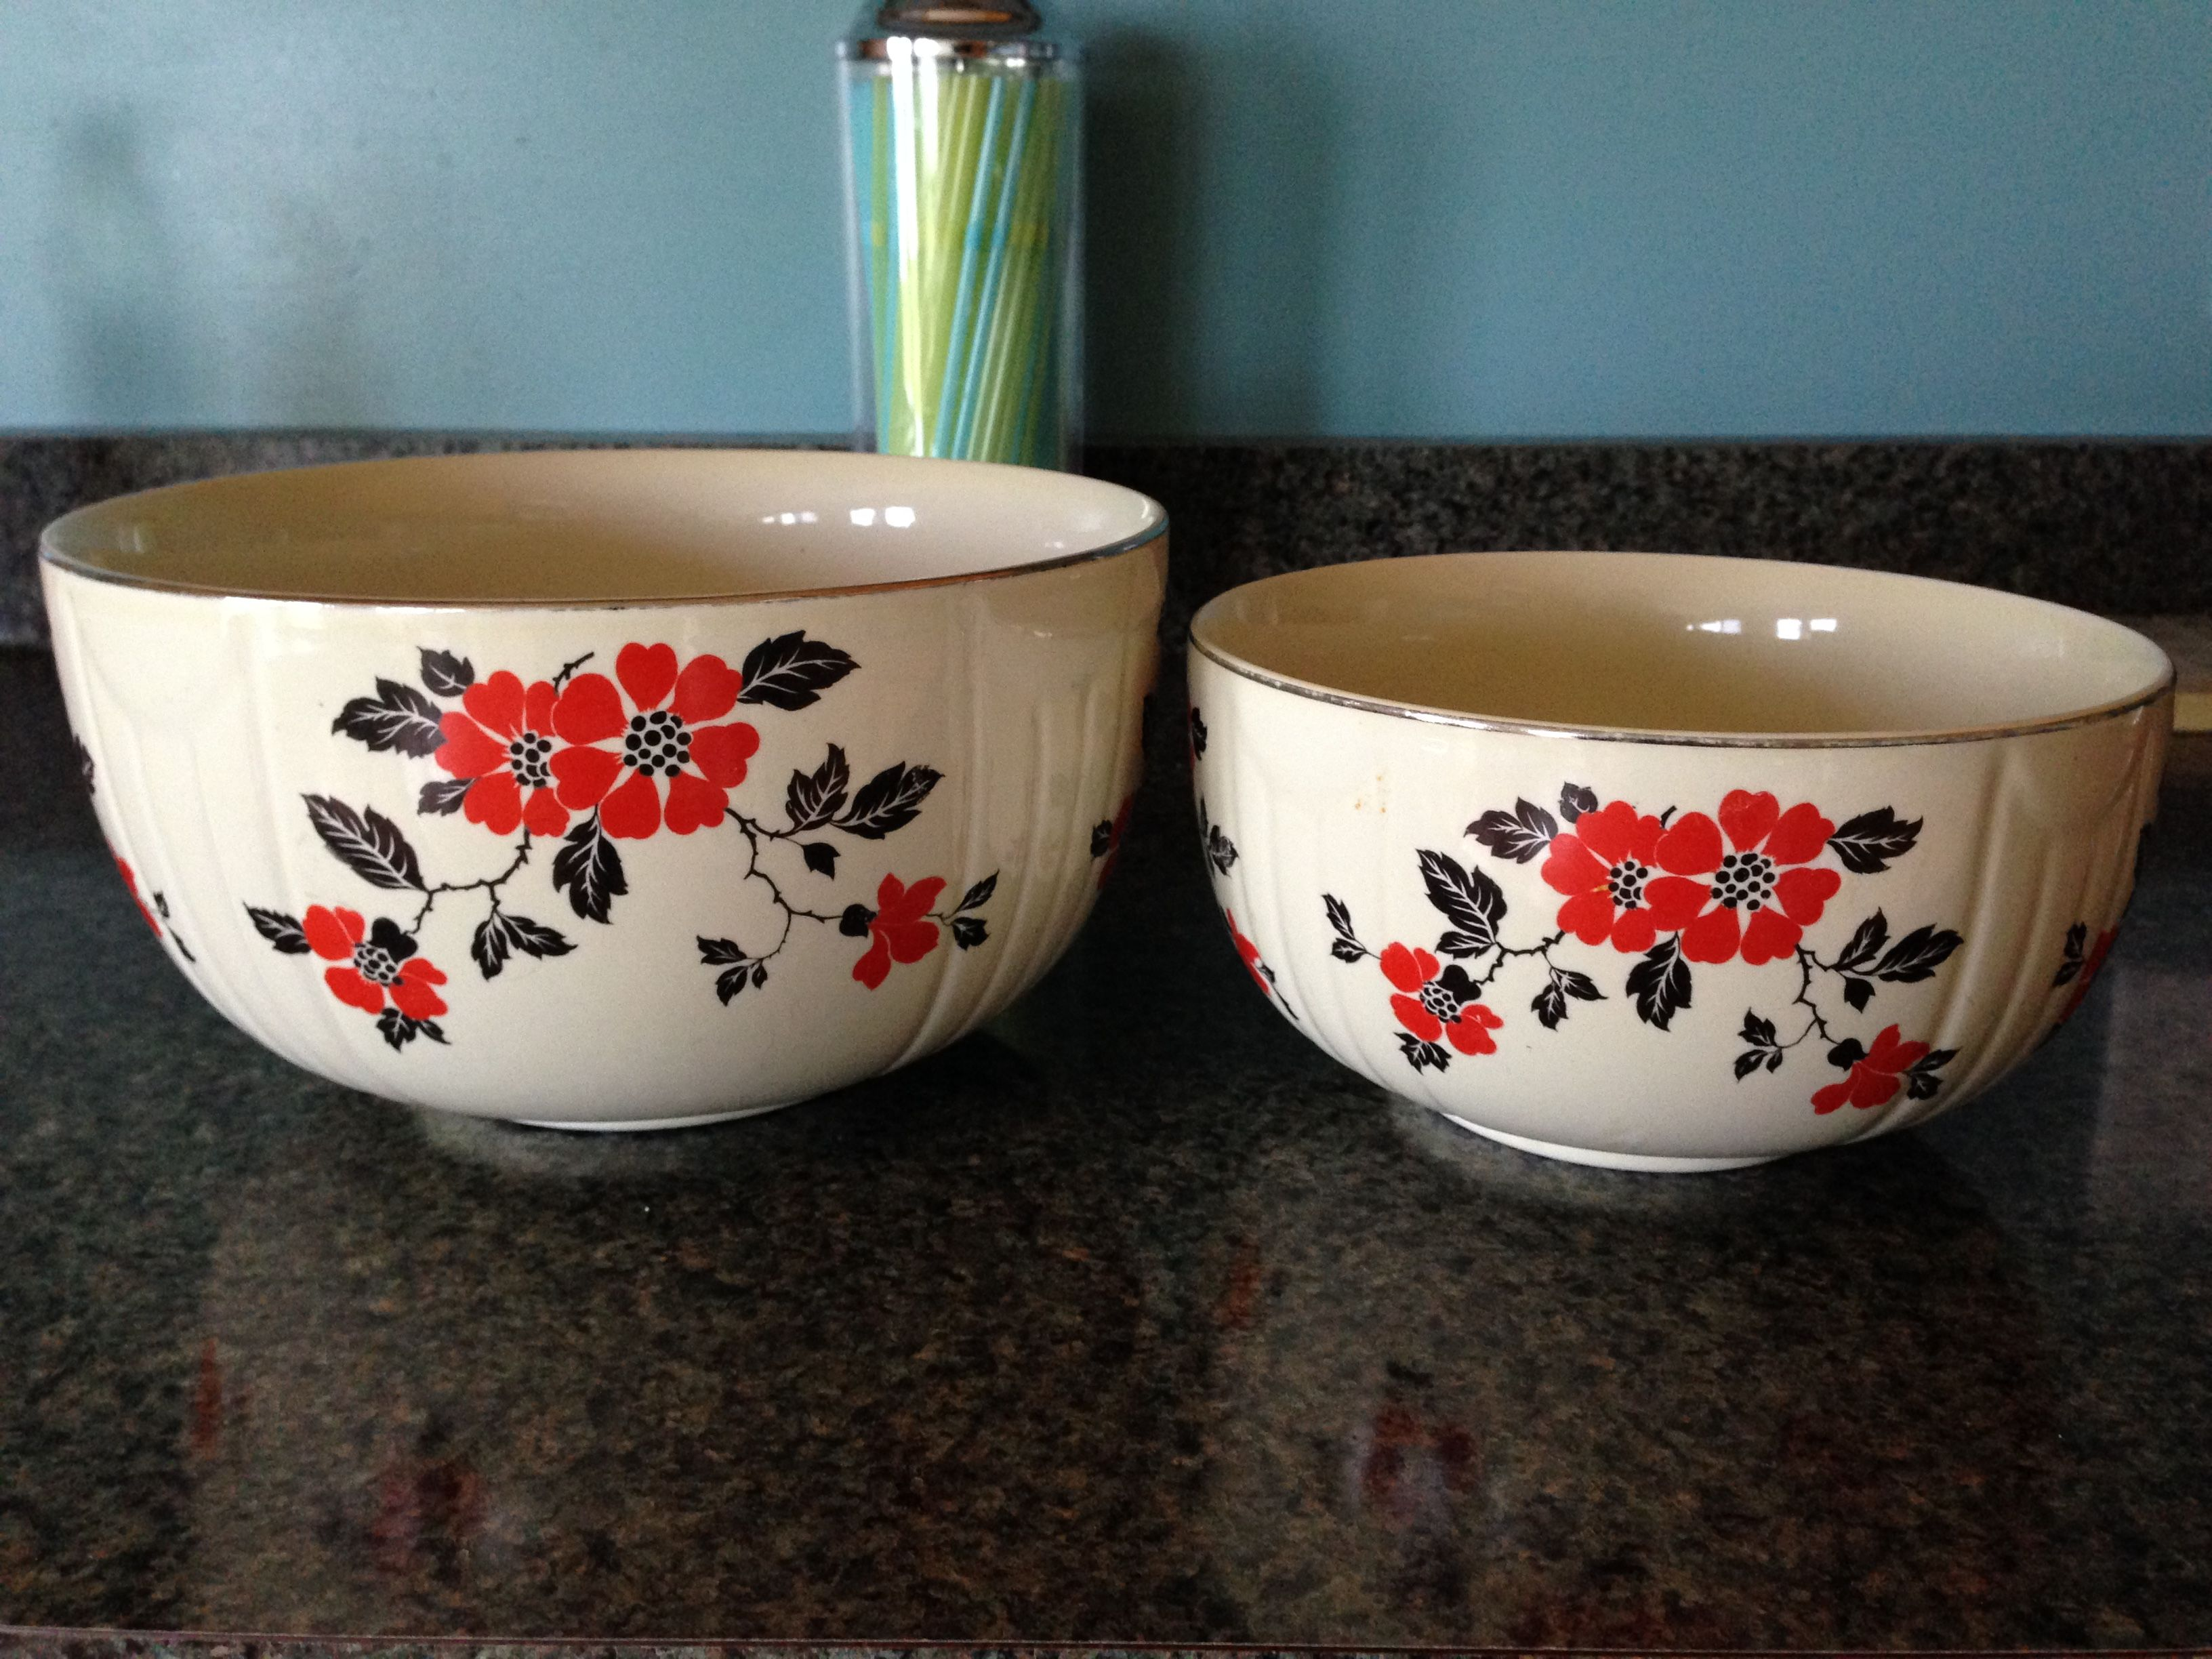 Hall S Superior Quality Kitchenware Vintage Nesting Bowls Red Poppy Red Poppies Currier And Ives Nesting Bowls